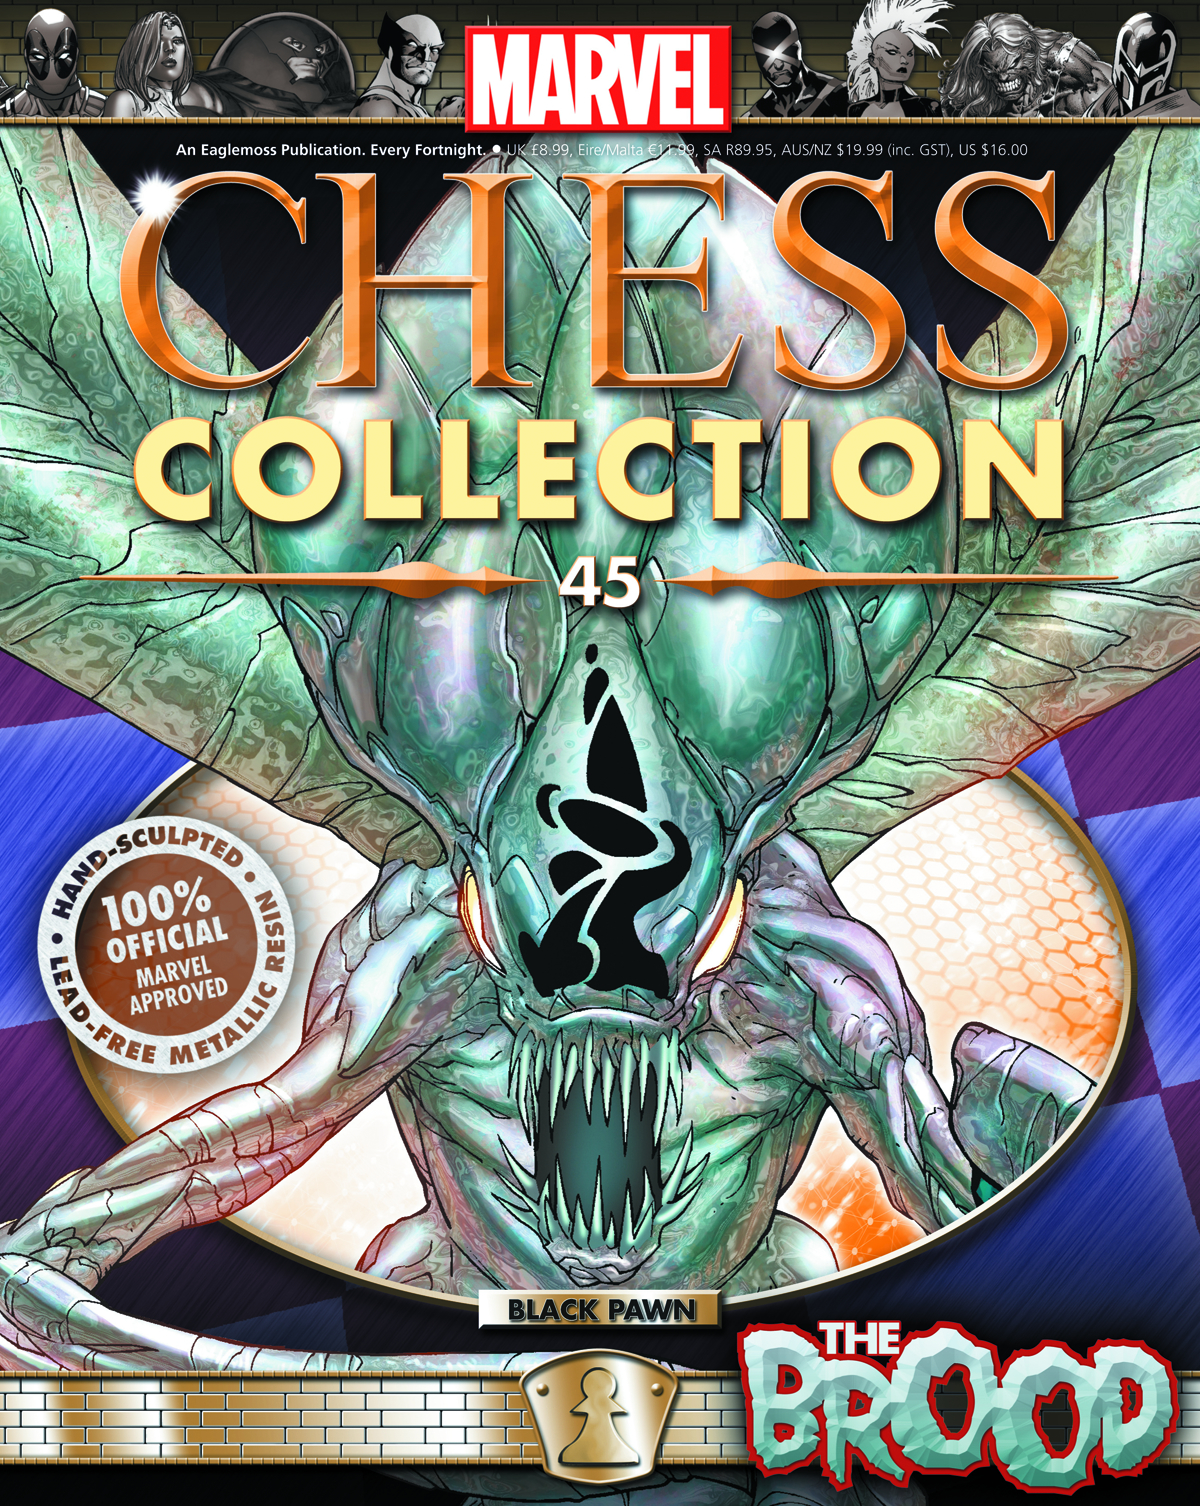 Marvel Chess Collection Vol 1 45